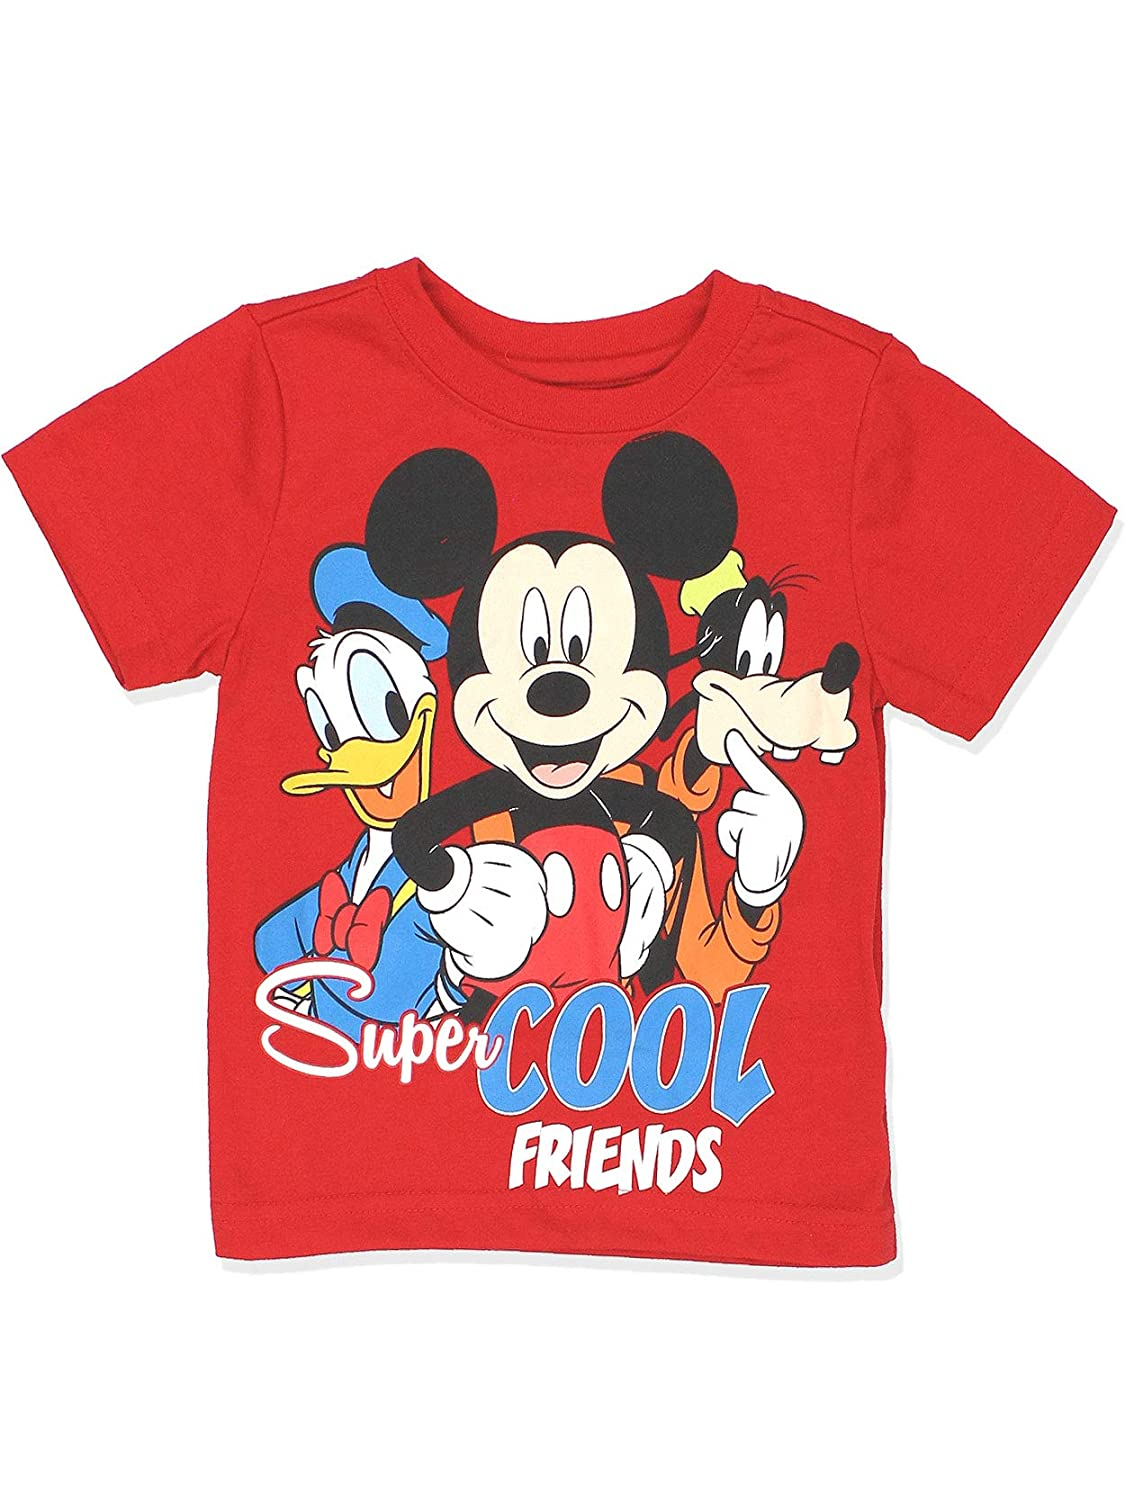 350c08a295b Amazon.com  Mickey Mouse Clubhouse Baby Toddler Boys Short Sleeve Tee   Clothing